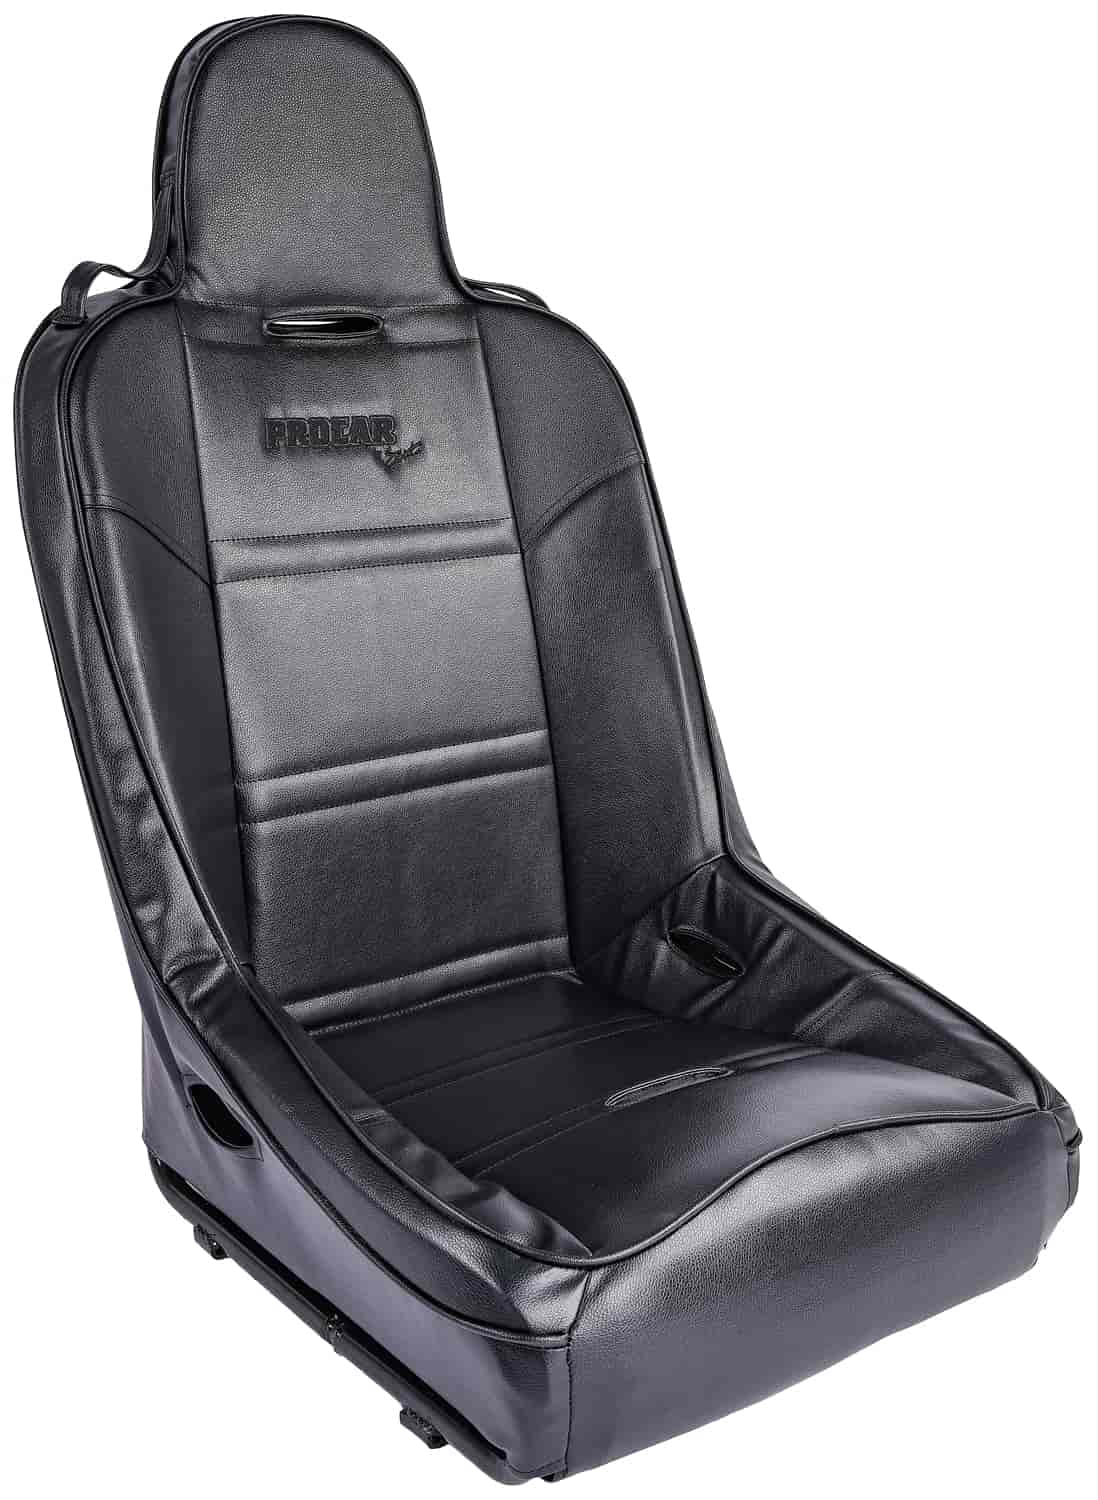 Scat 80-1620-51 - Procar Terrain Series 1620 Suspension Seats